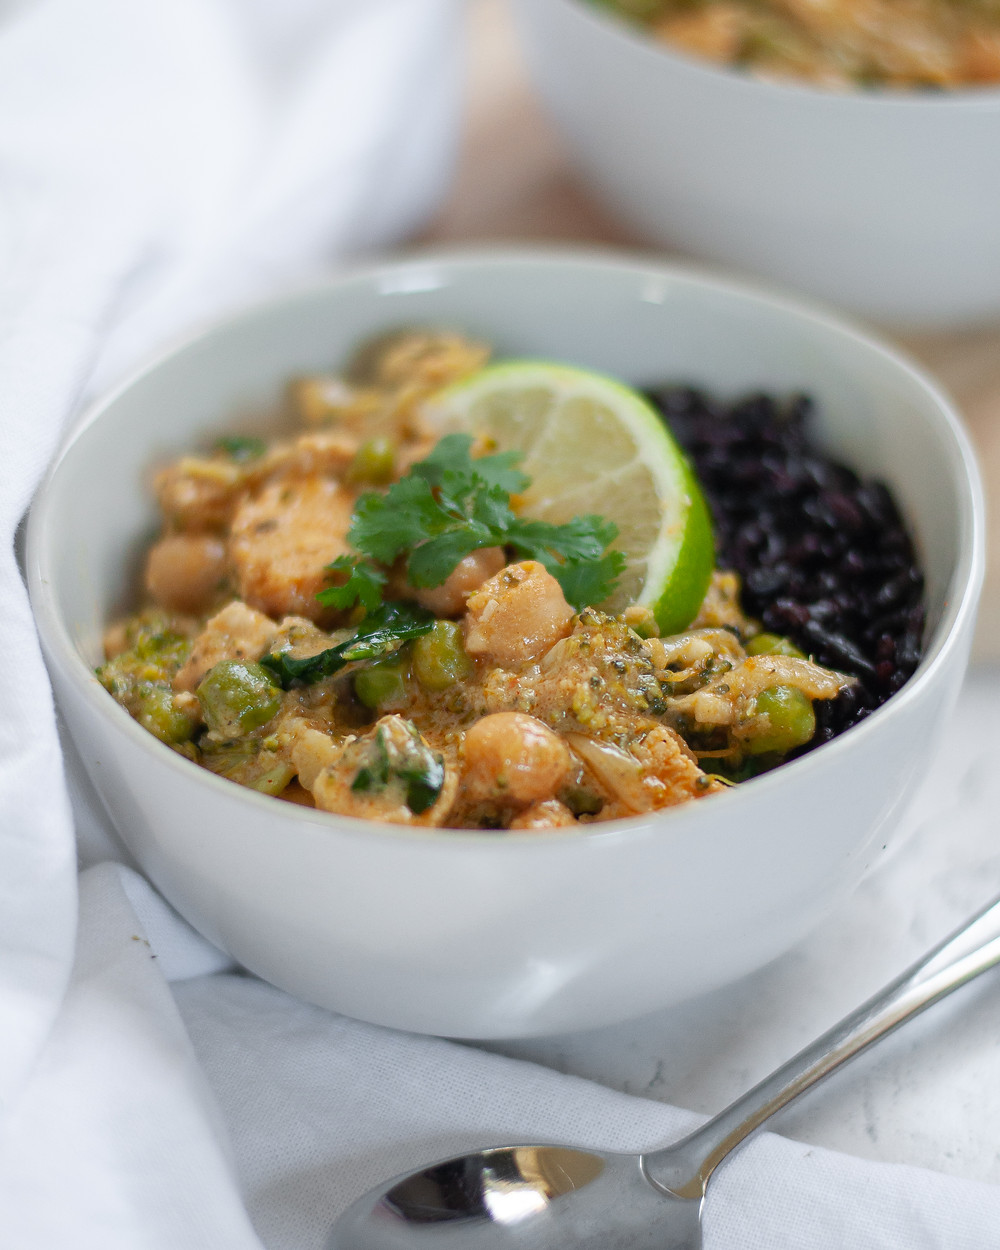 Close up shot of a bowl of chicken vegetable curry with chickpeas served with forbidden rice, a lime wedge, and cilantro.